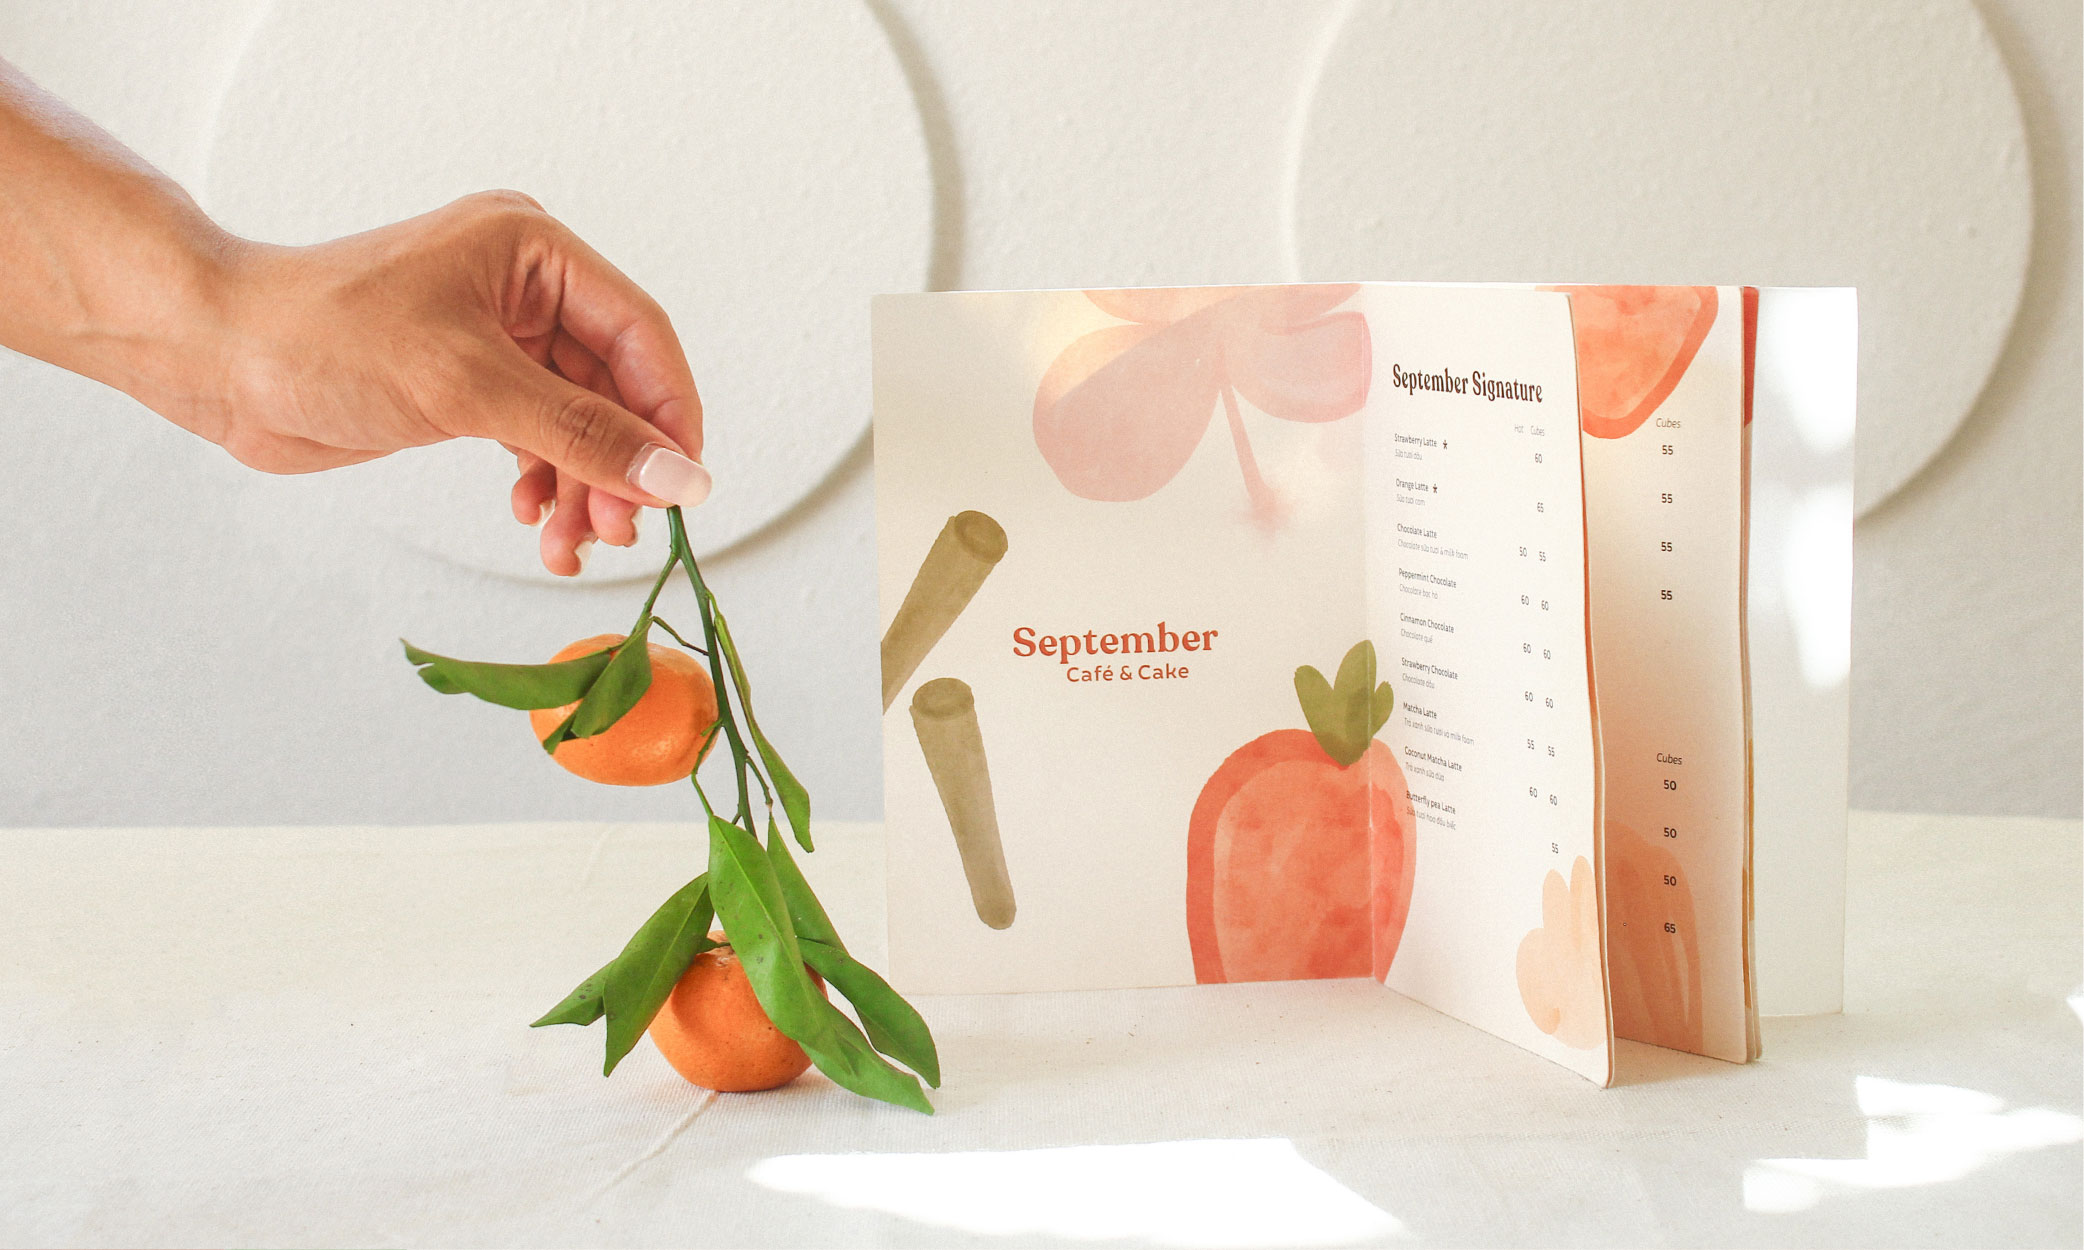 Chochoi Creative Craft Branding and Packaging Design for September Café & Cake Project